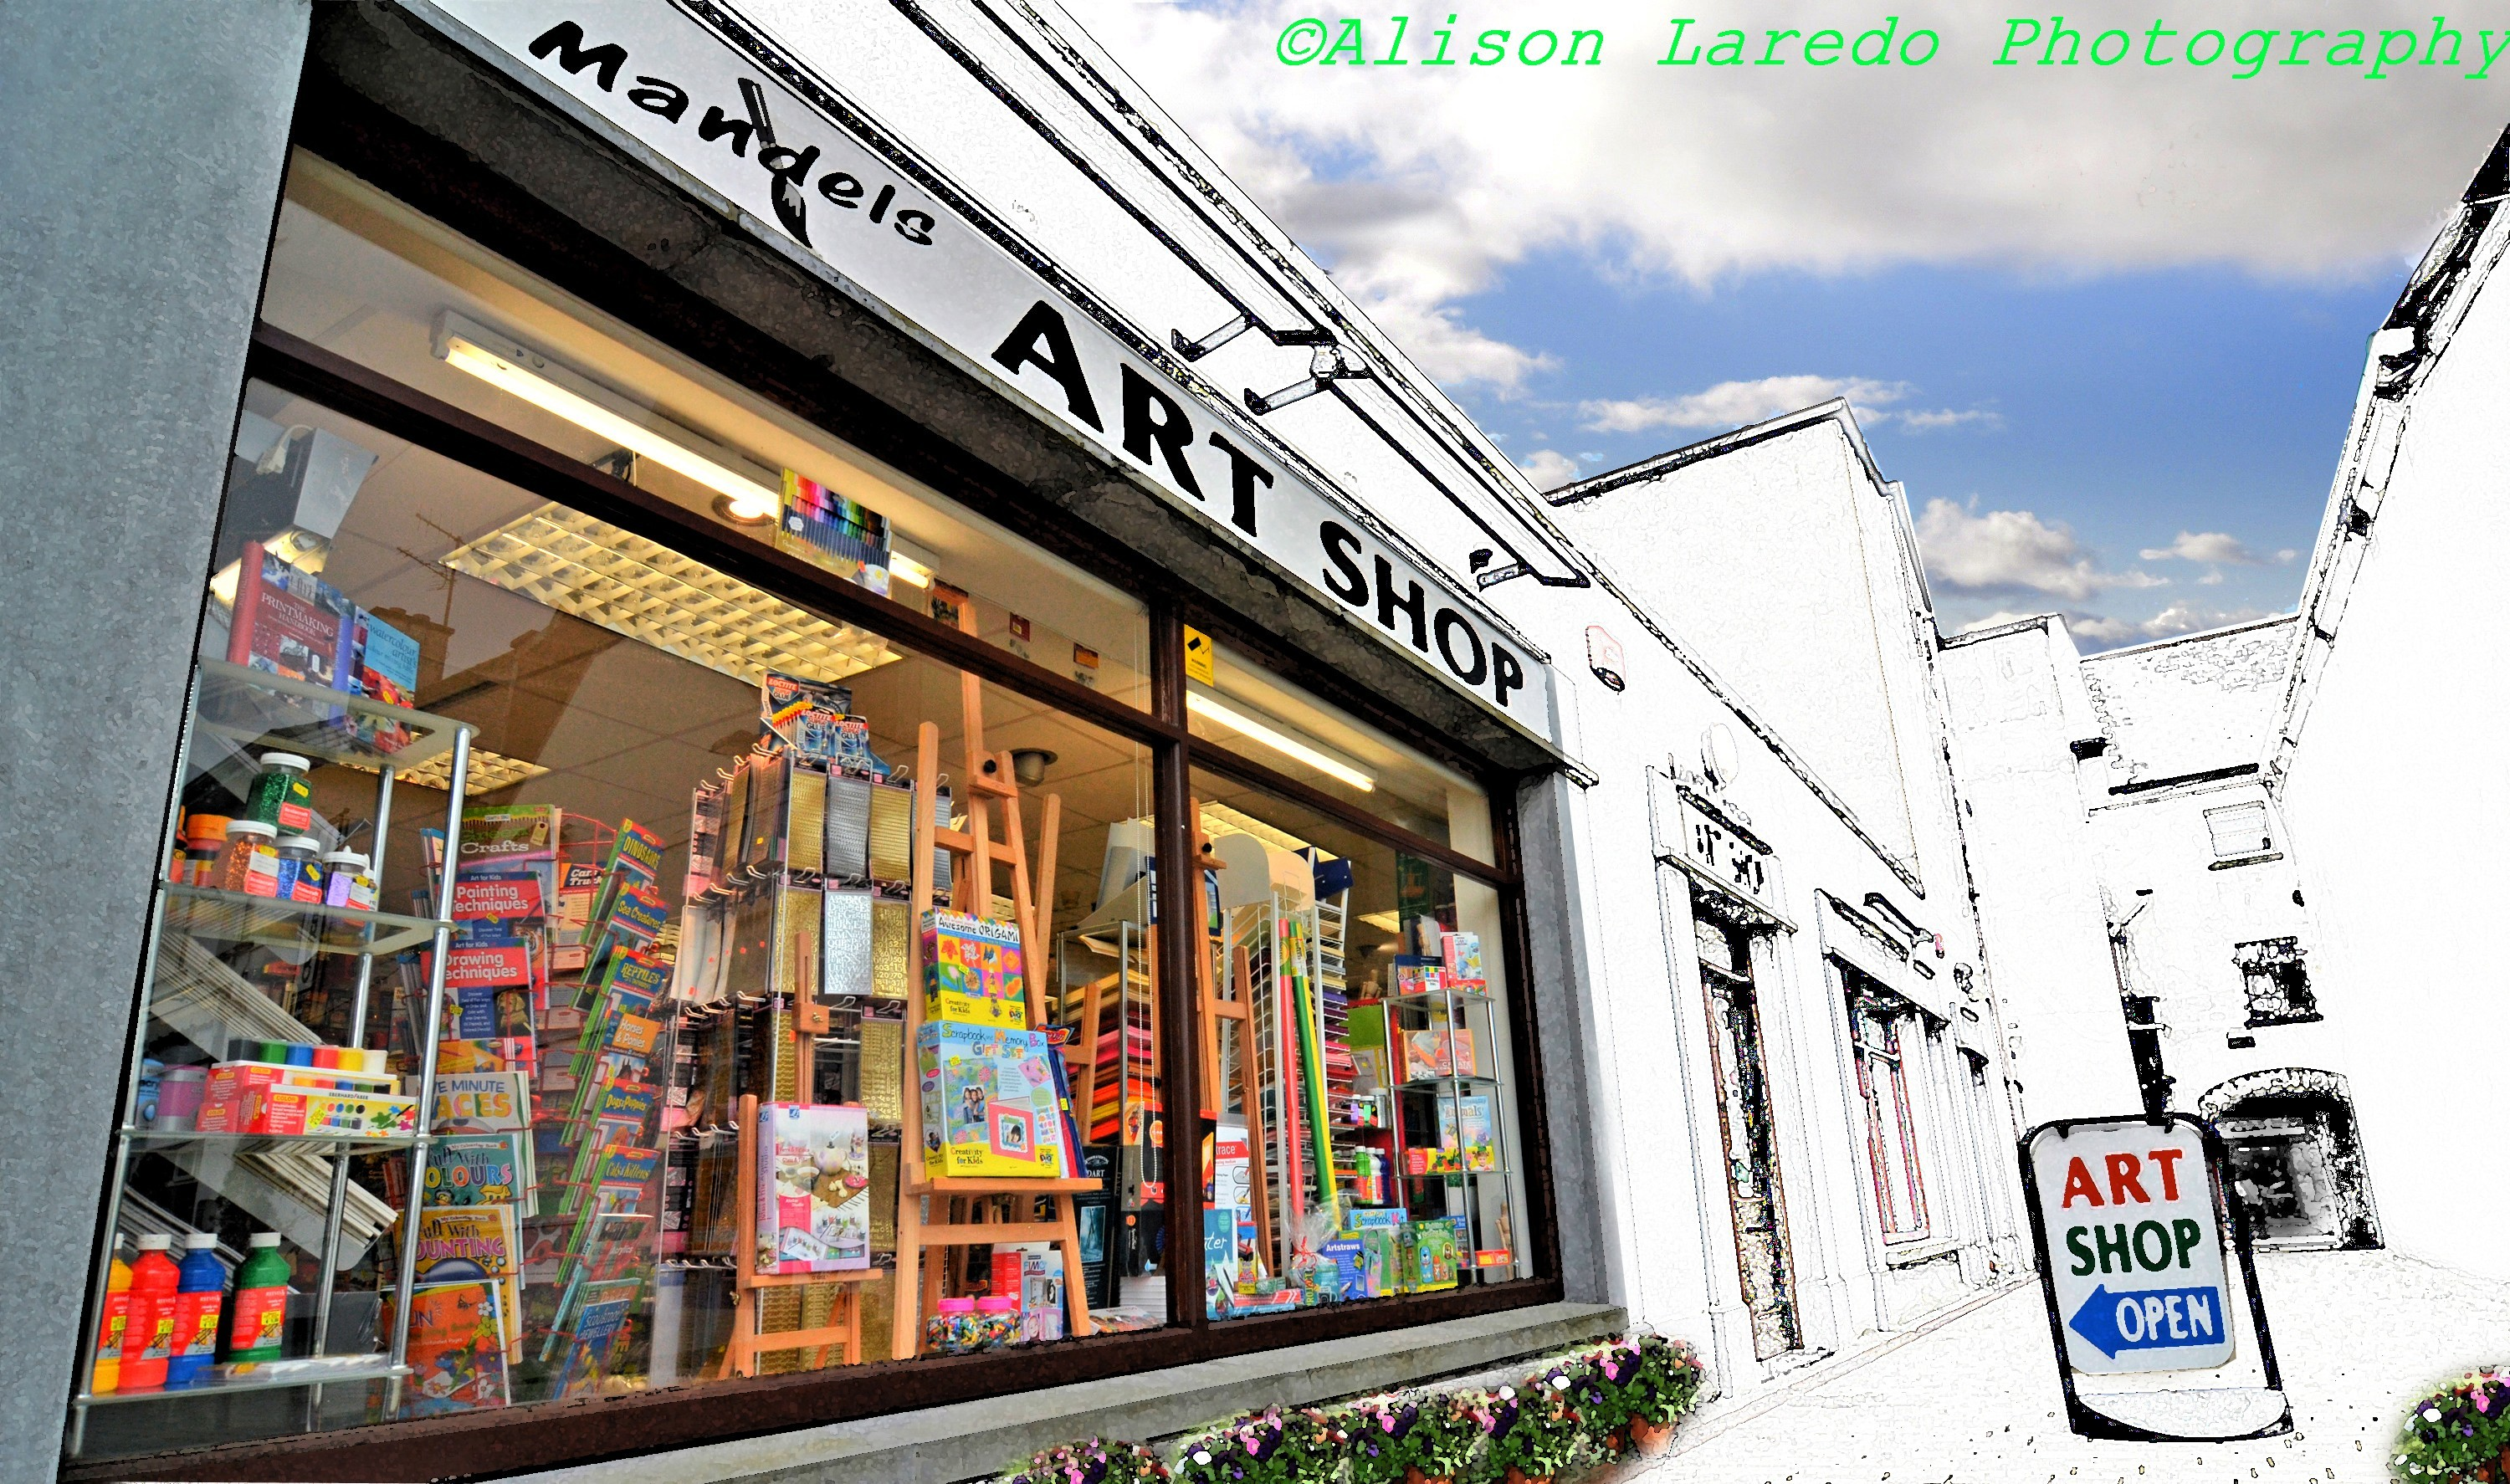 Art Shop mandel's art shop